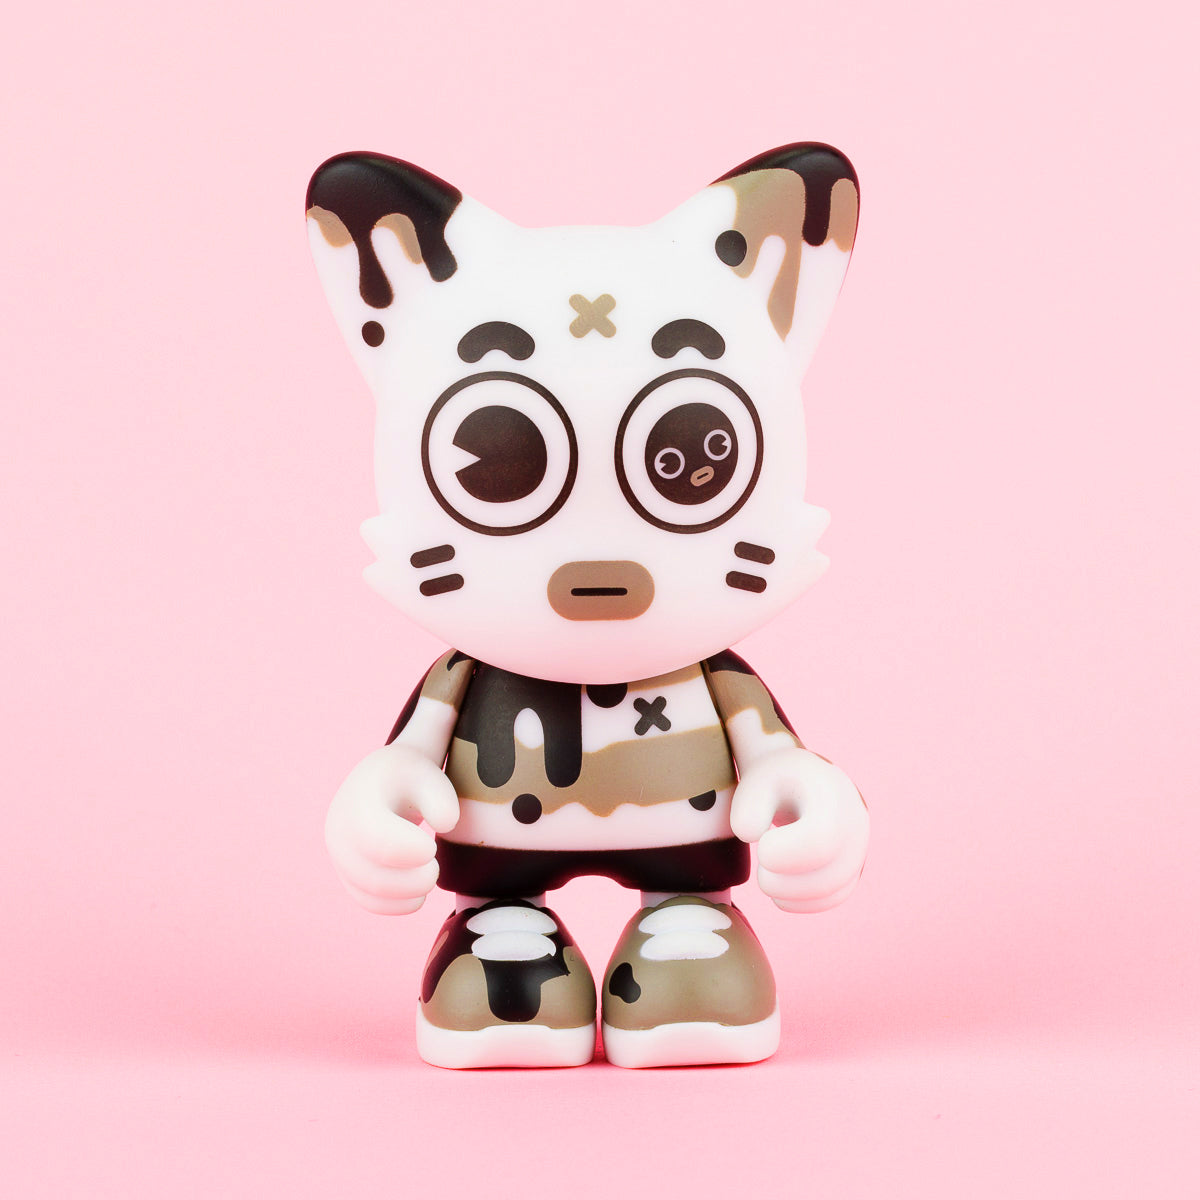 Superplastic Bo-Ni-To Janky Vinyl Art Toy by El Grand Chamaco